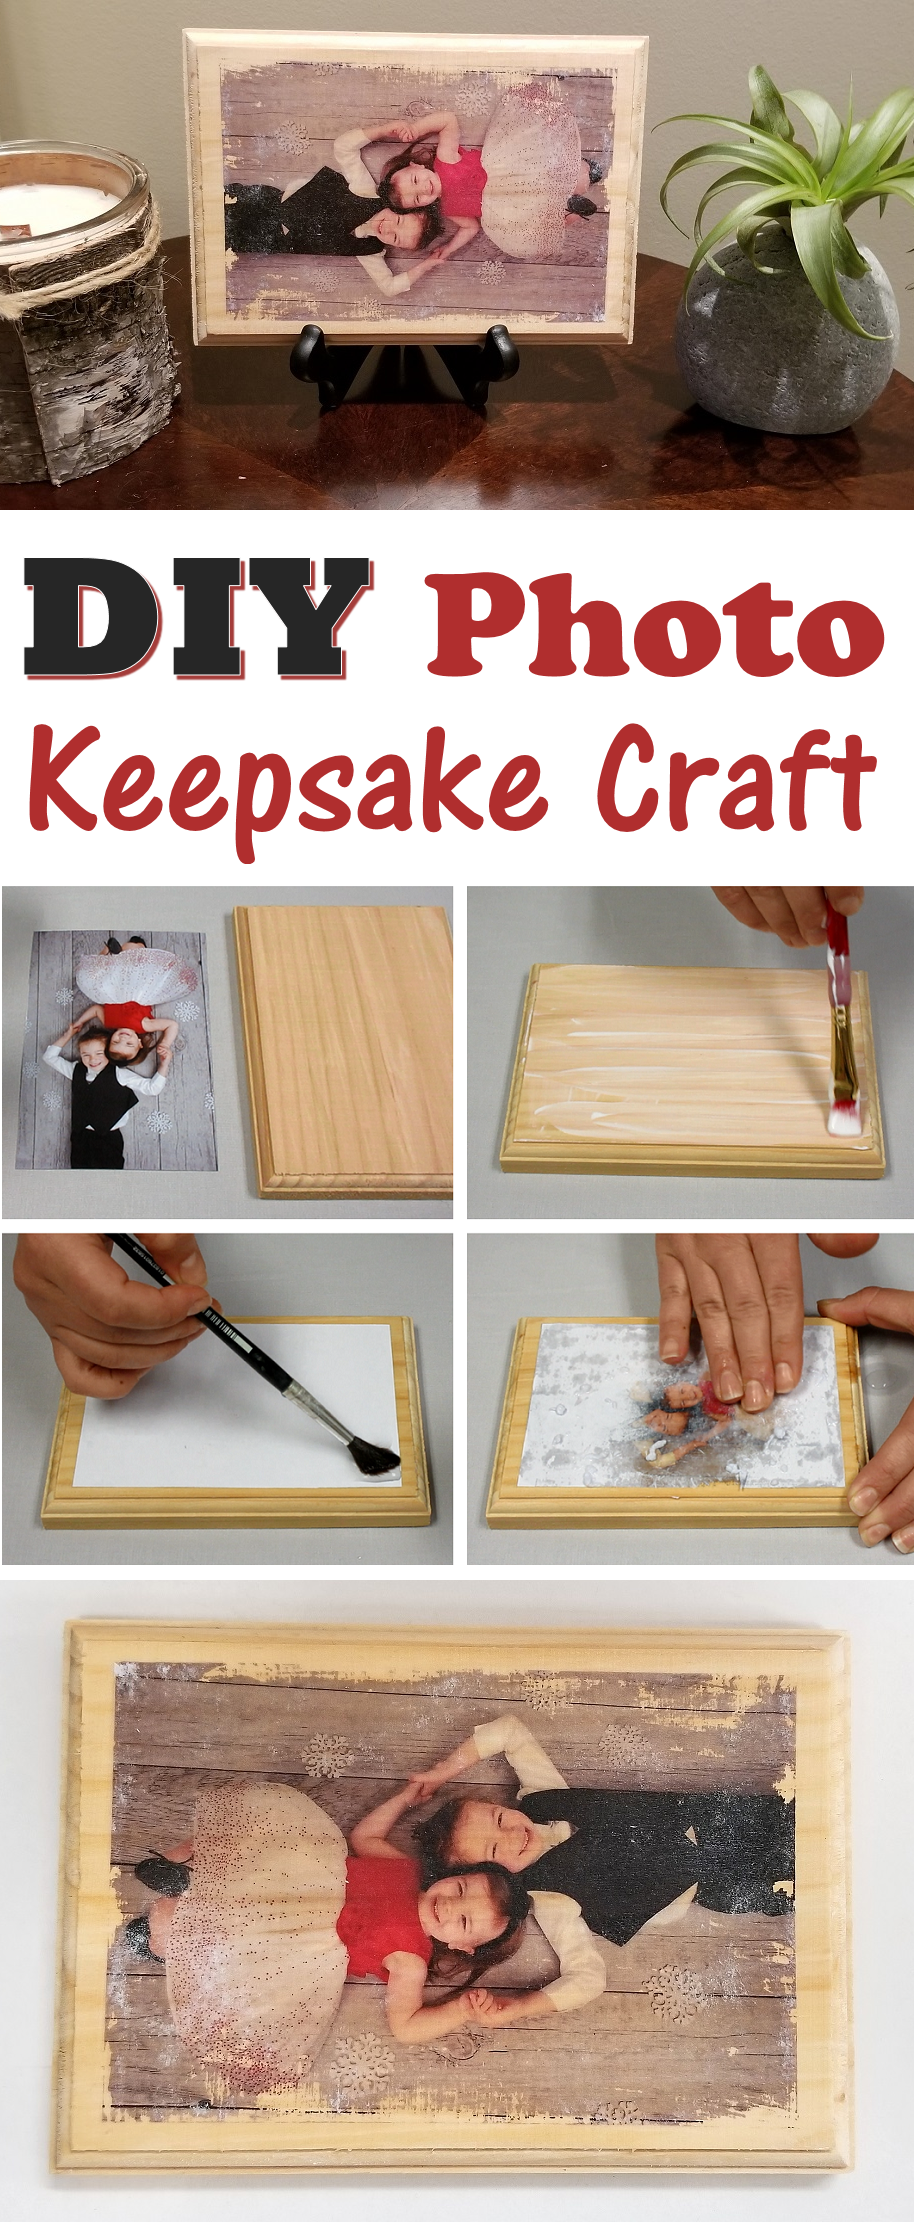 16 diy Projects for gifts ideas